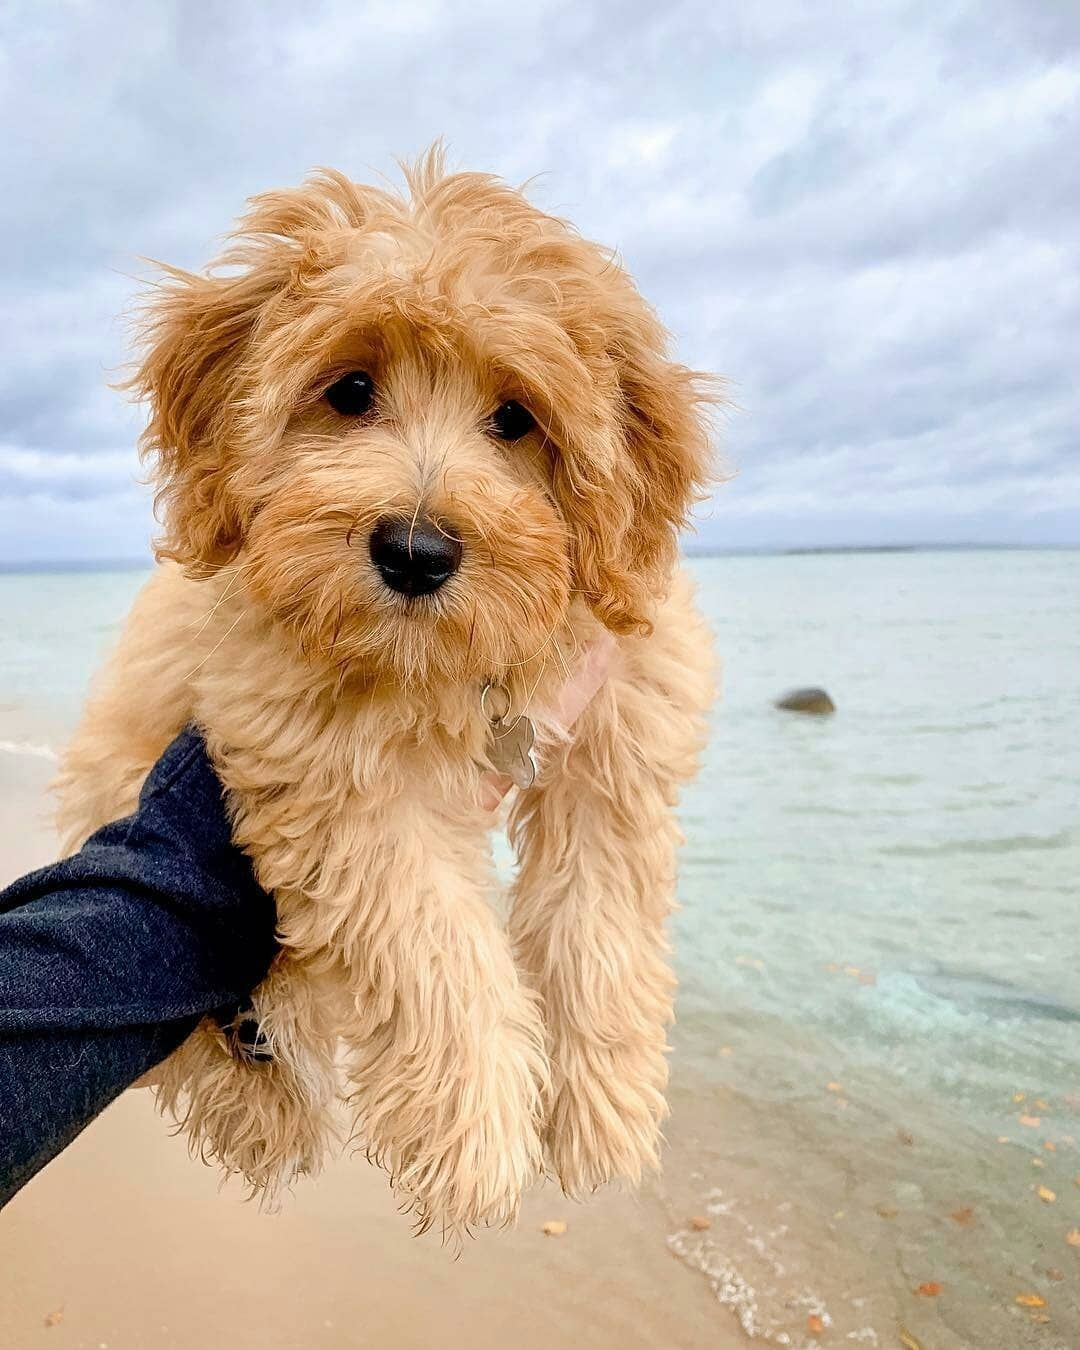 Pin By Stacey Bolick On Fur Babies In 2020 Goldendoodle Puppy Miniature Goldendoodle Puppies Goldendoodle Miniature